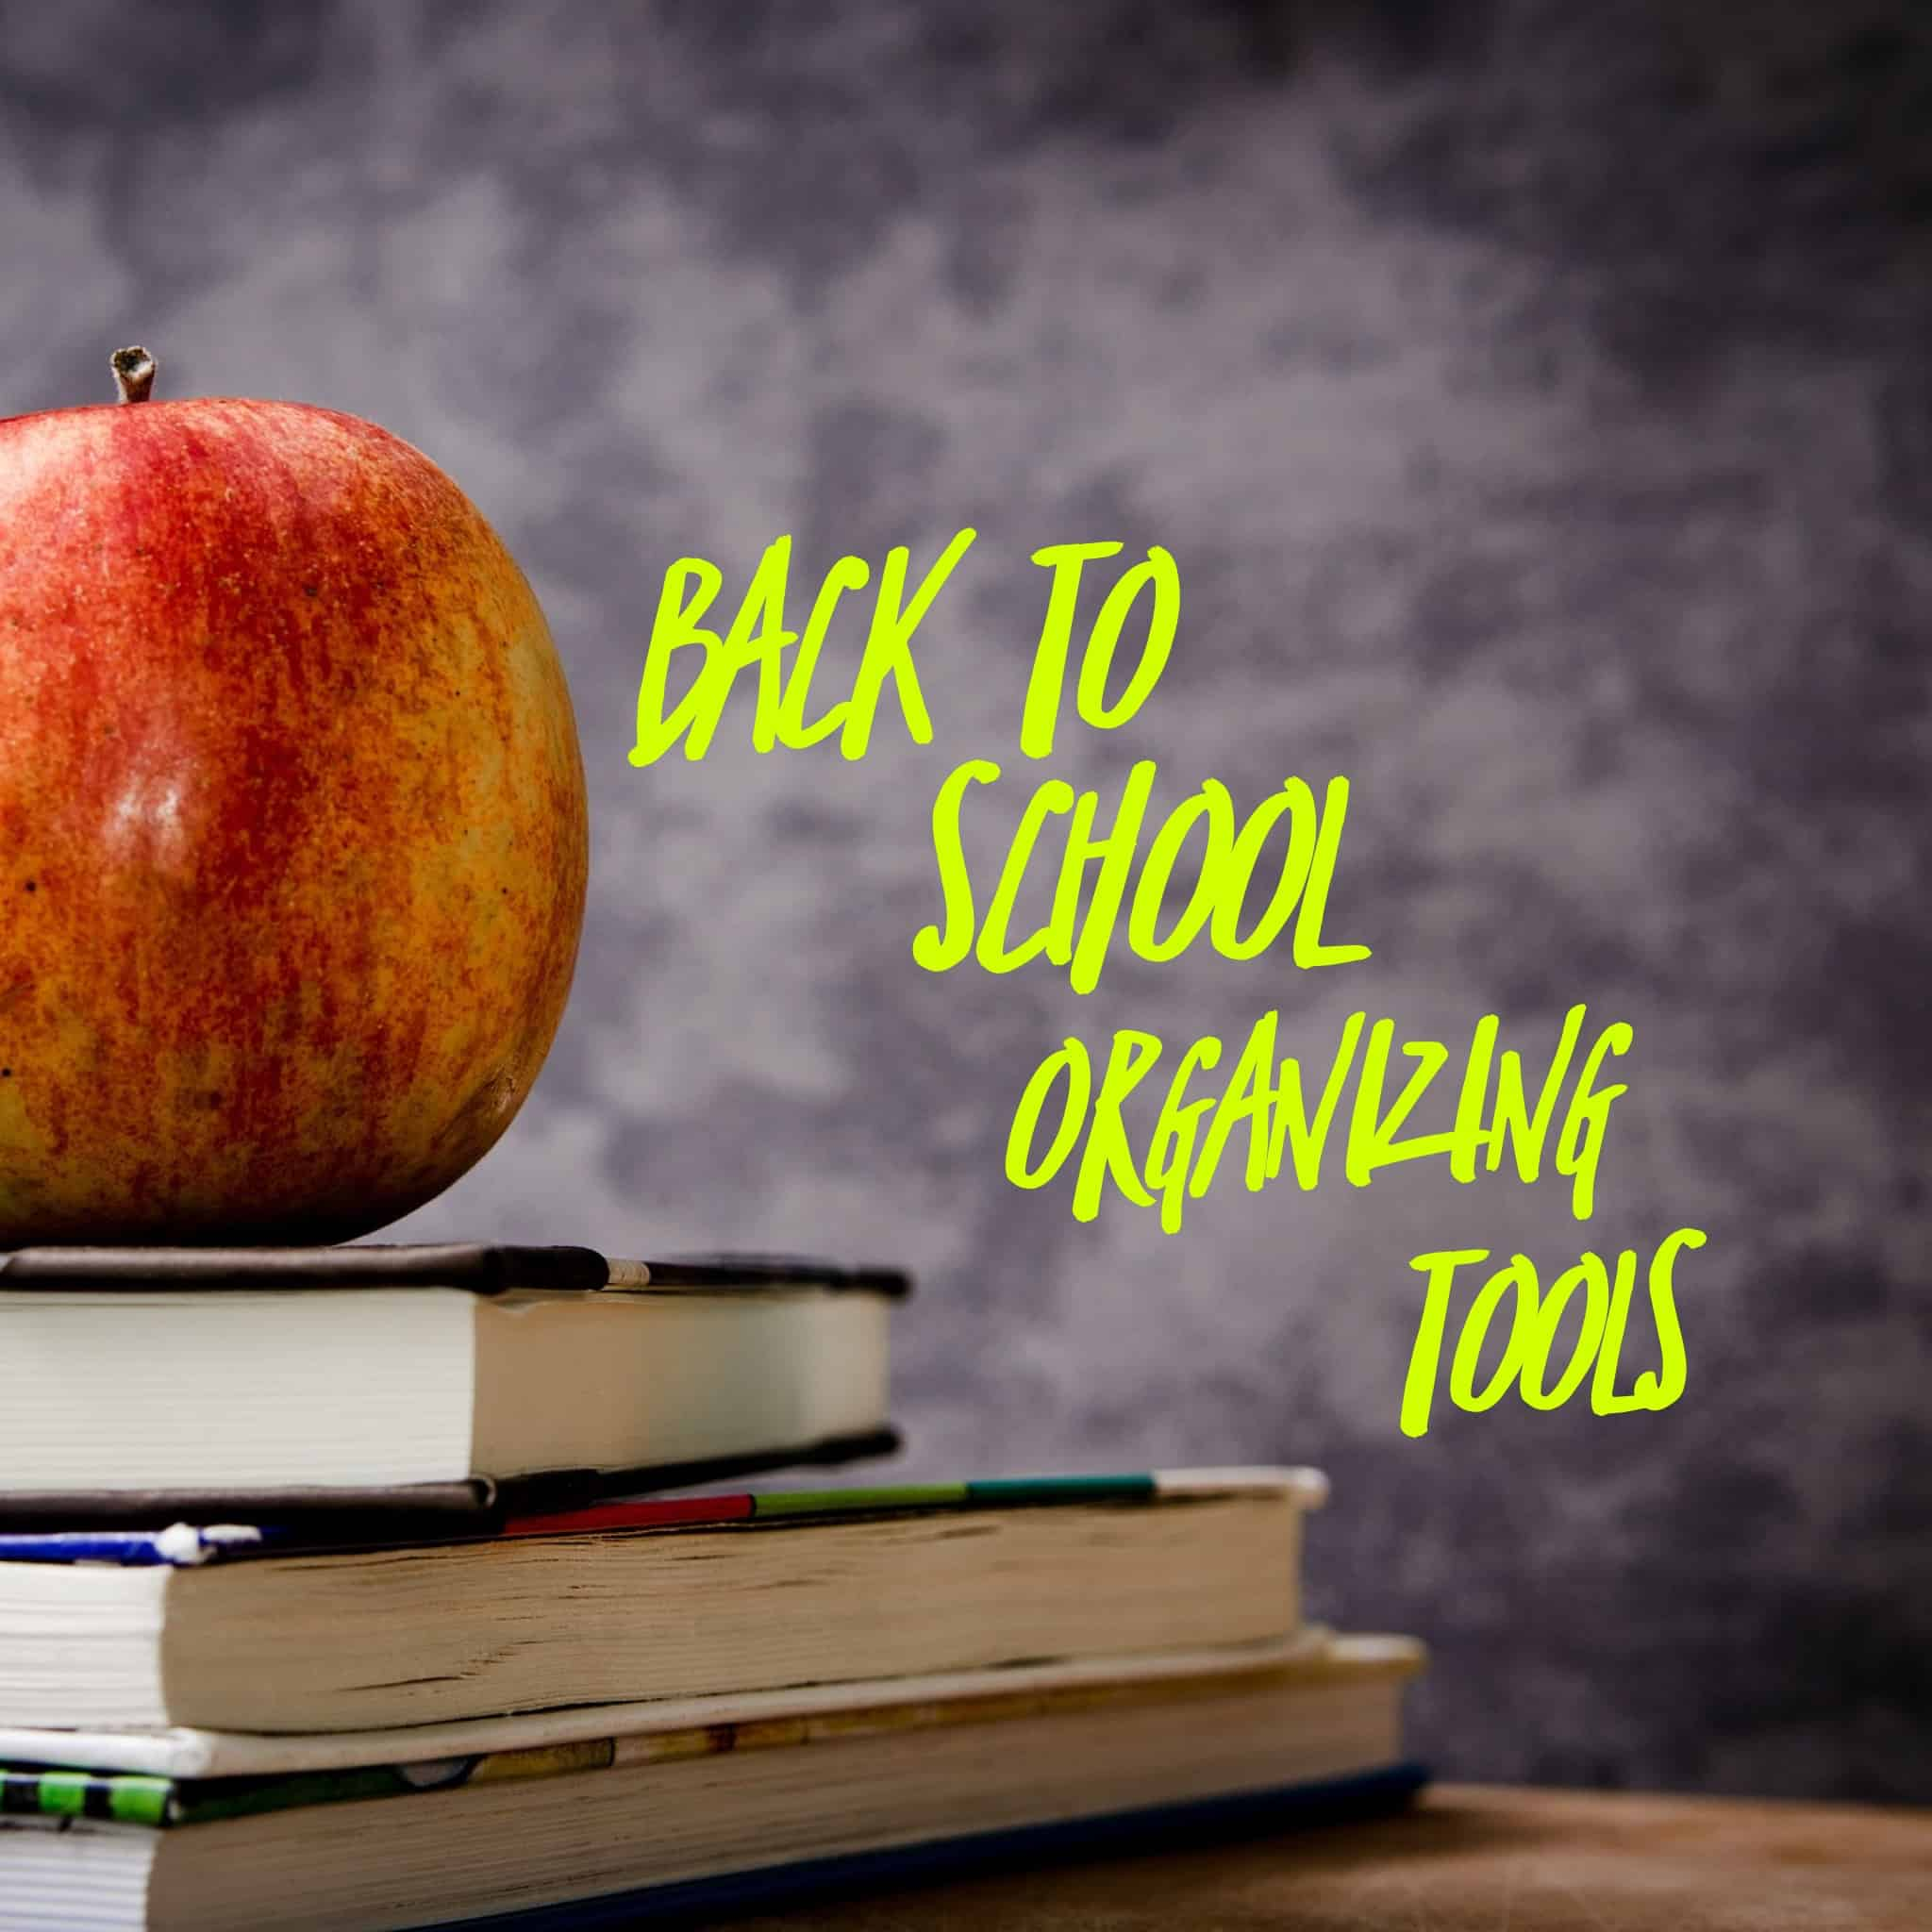 Back to School Organizing Tools